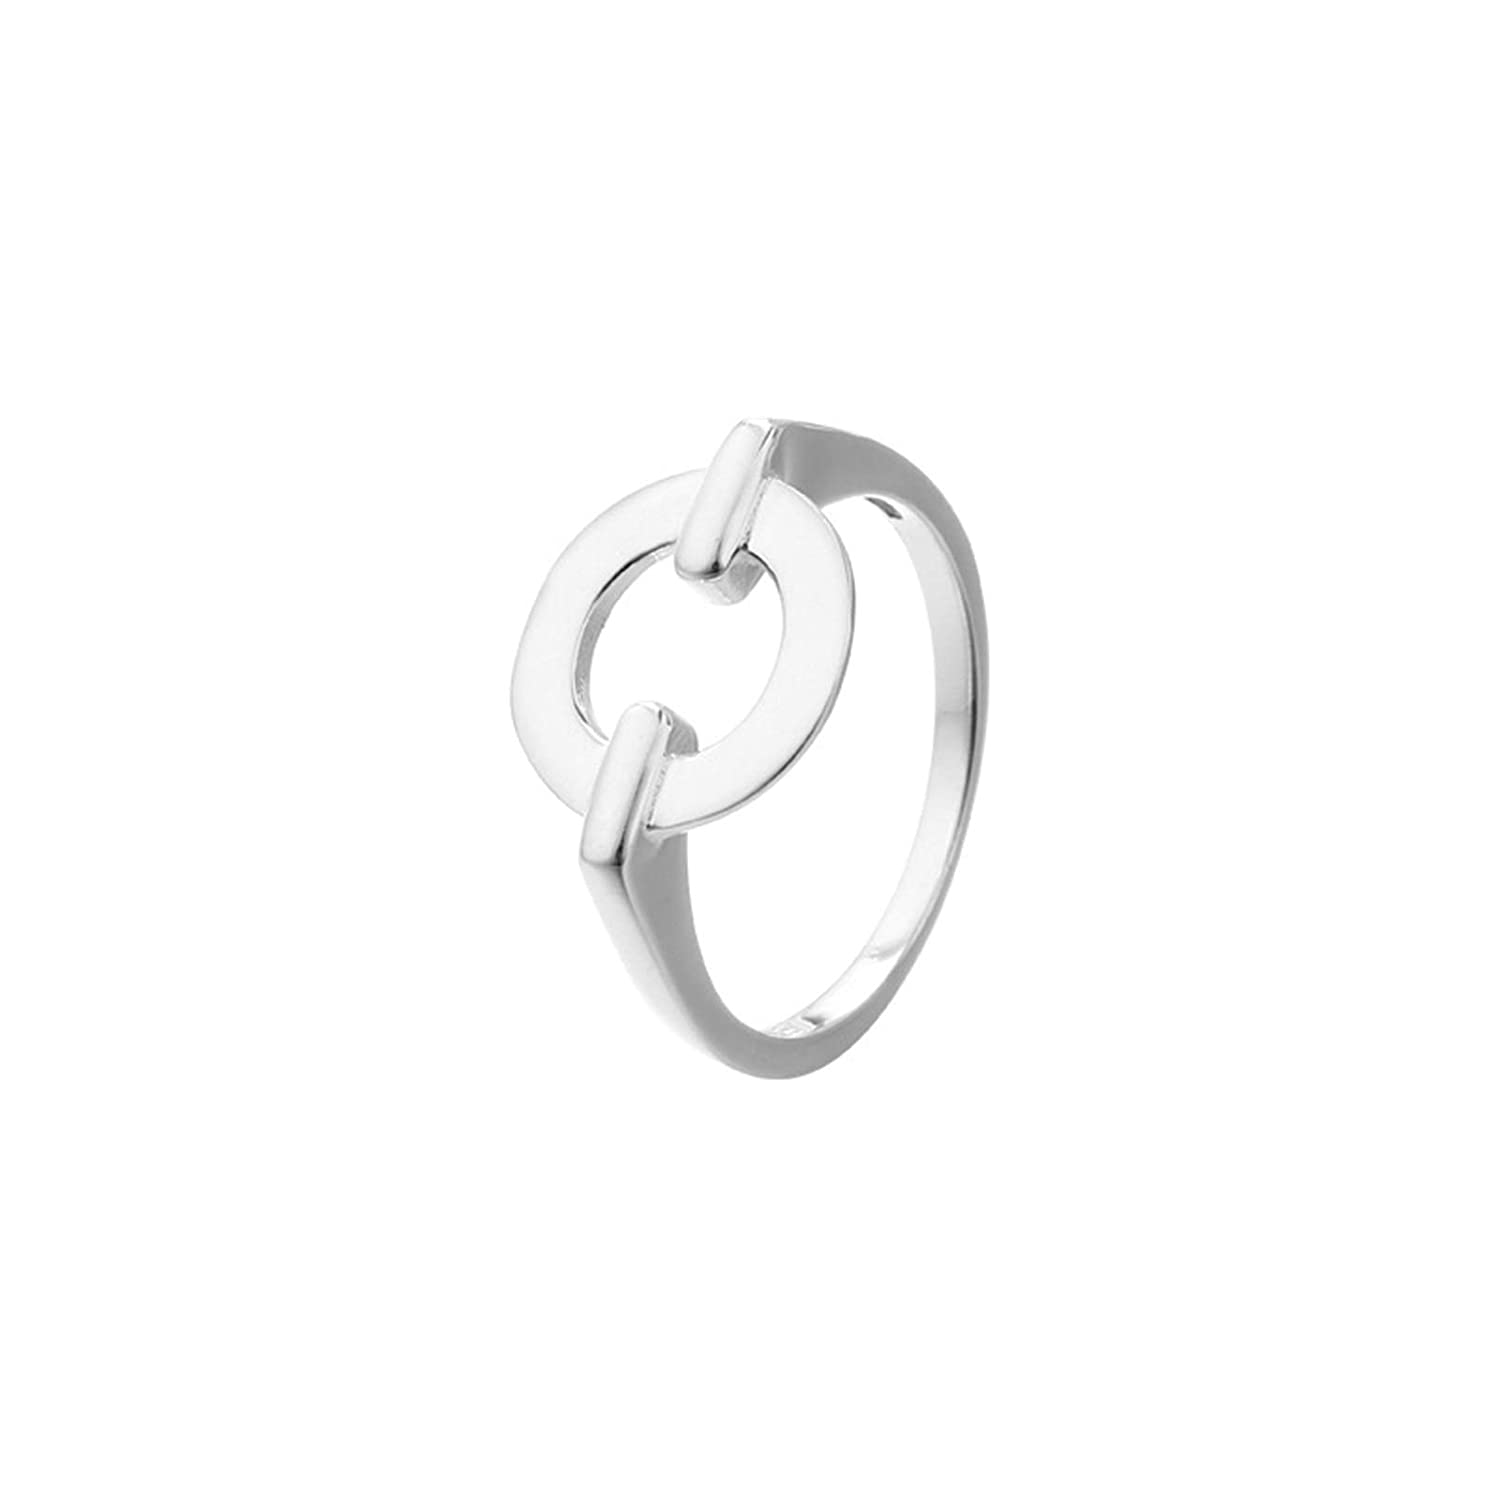 Daesar 925 Sterling Silver Rings for Women Ring Circle Silver Ring Size